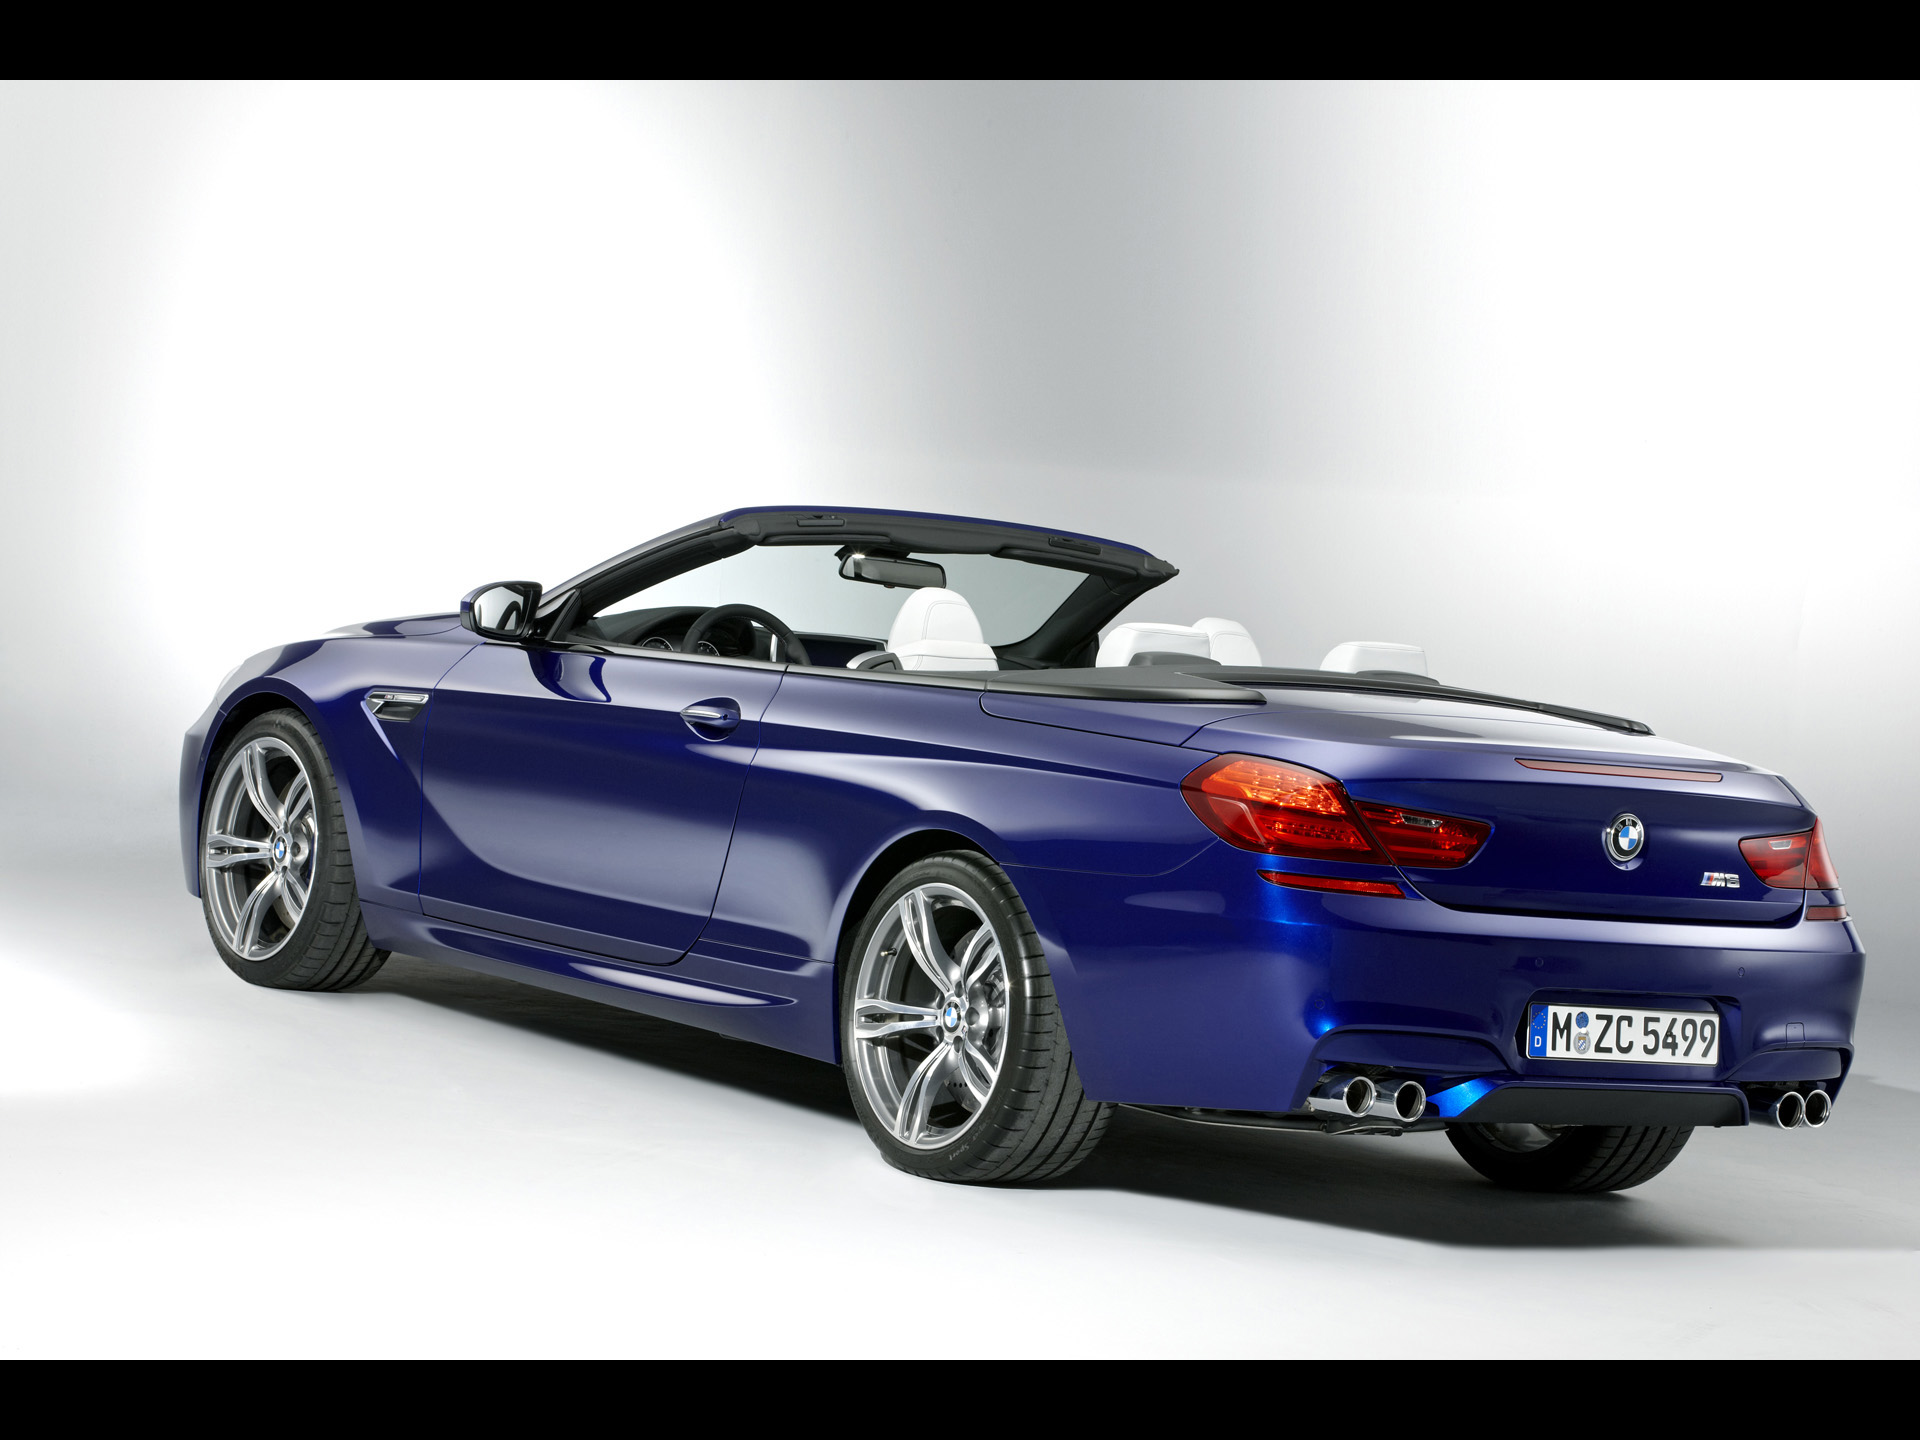 bmw m6 cabrio bmw wallpaper 29312334 fanpop. Black Bedroom Furniture Sets. Home Design Ideas